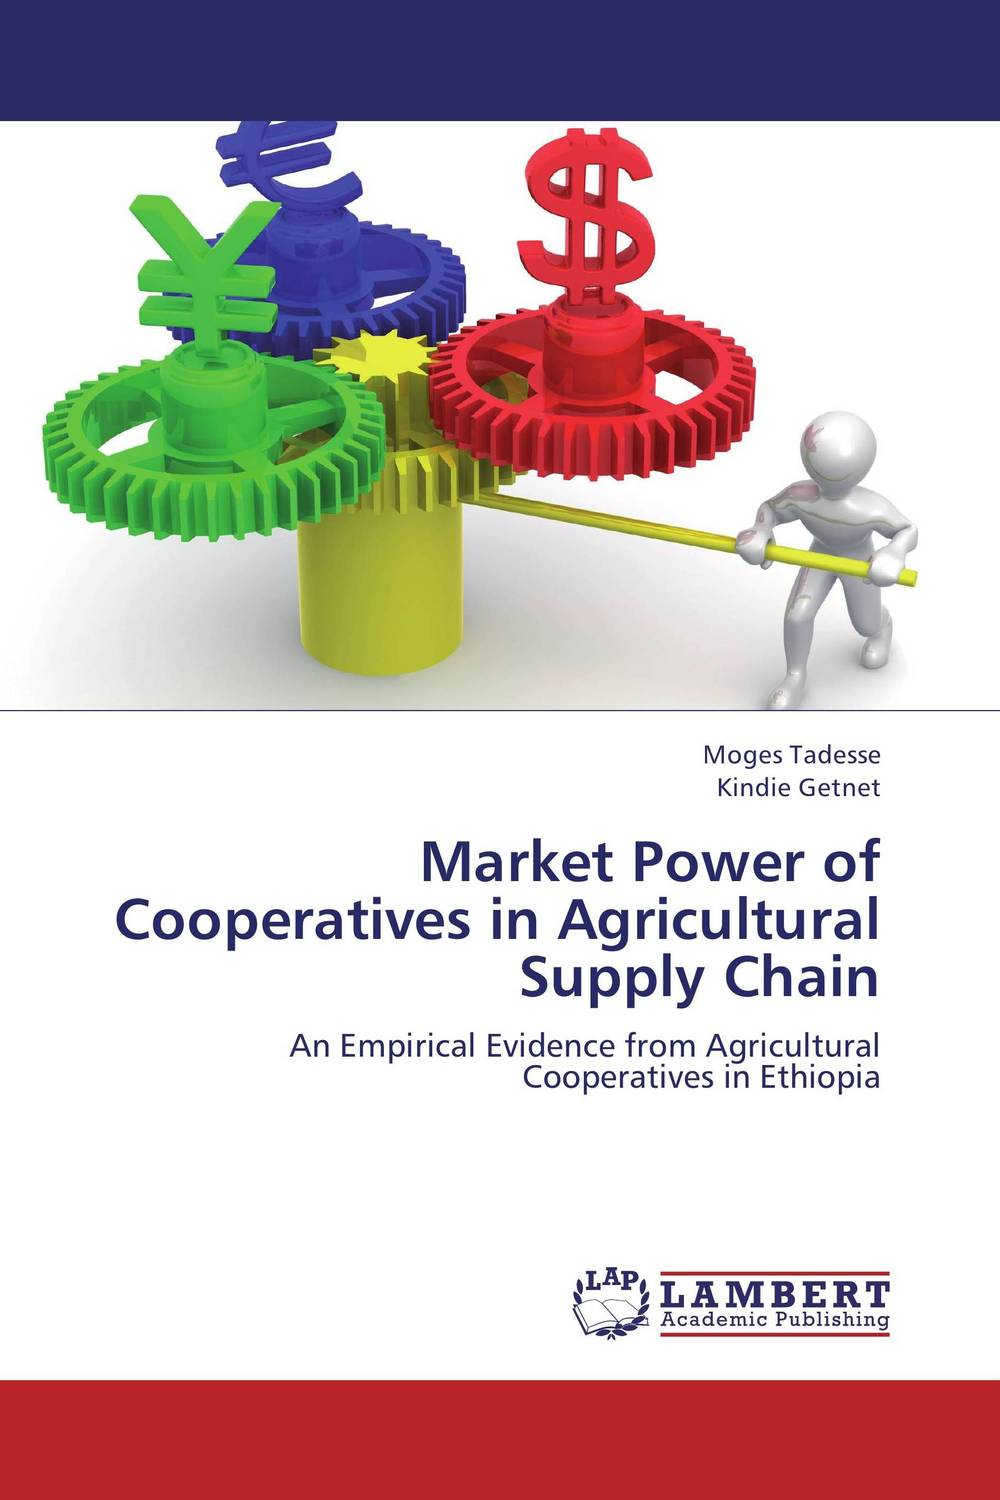 Market Power of Cooperatives in Agricultural Supply Chain